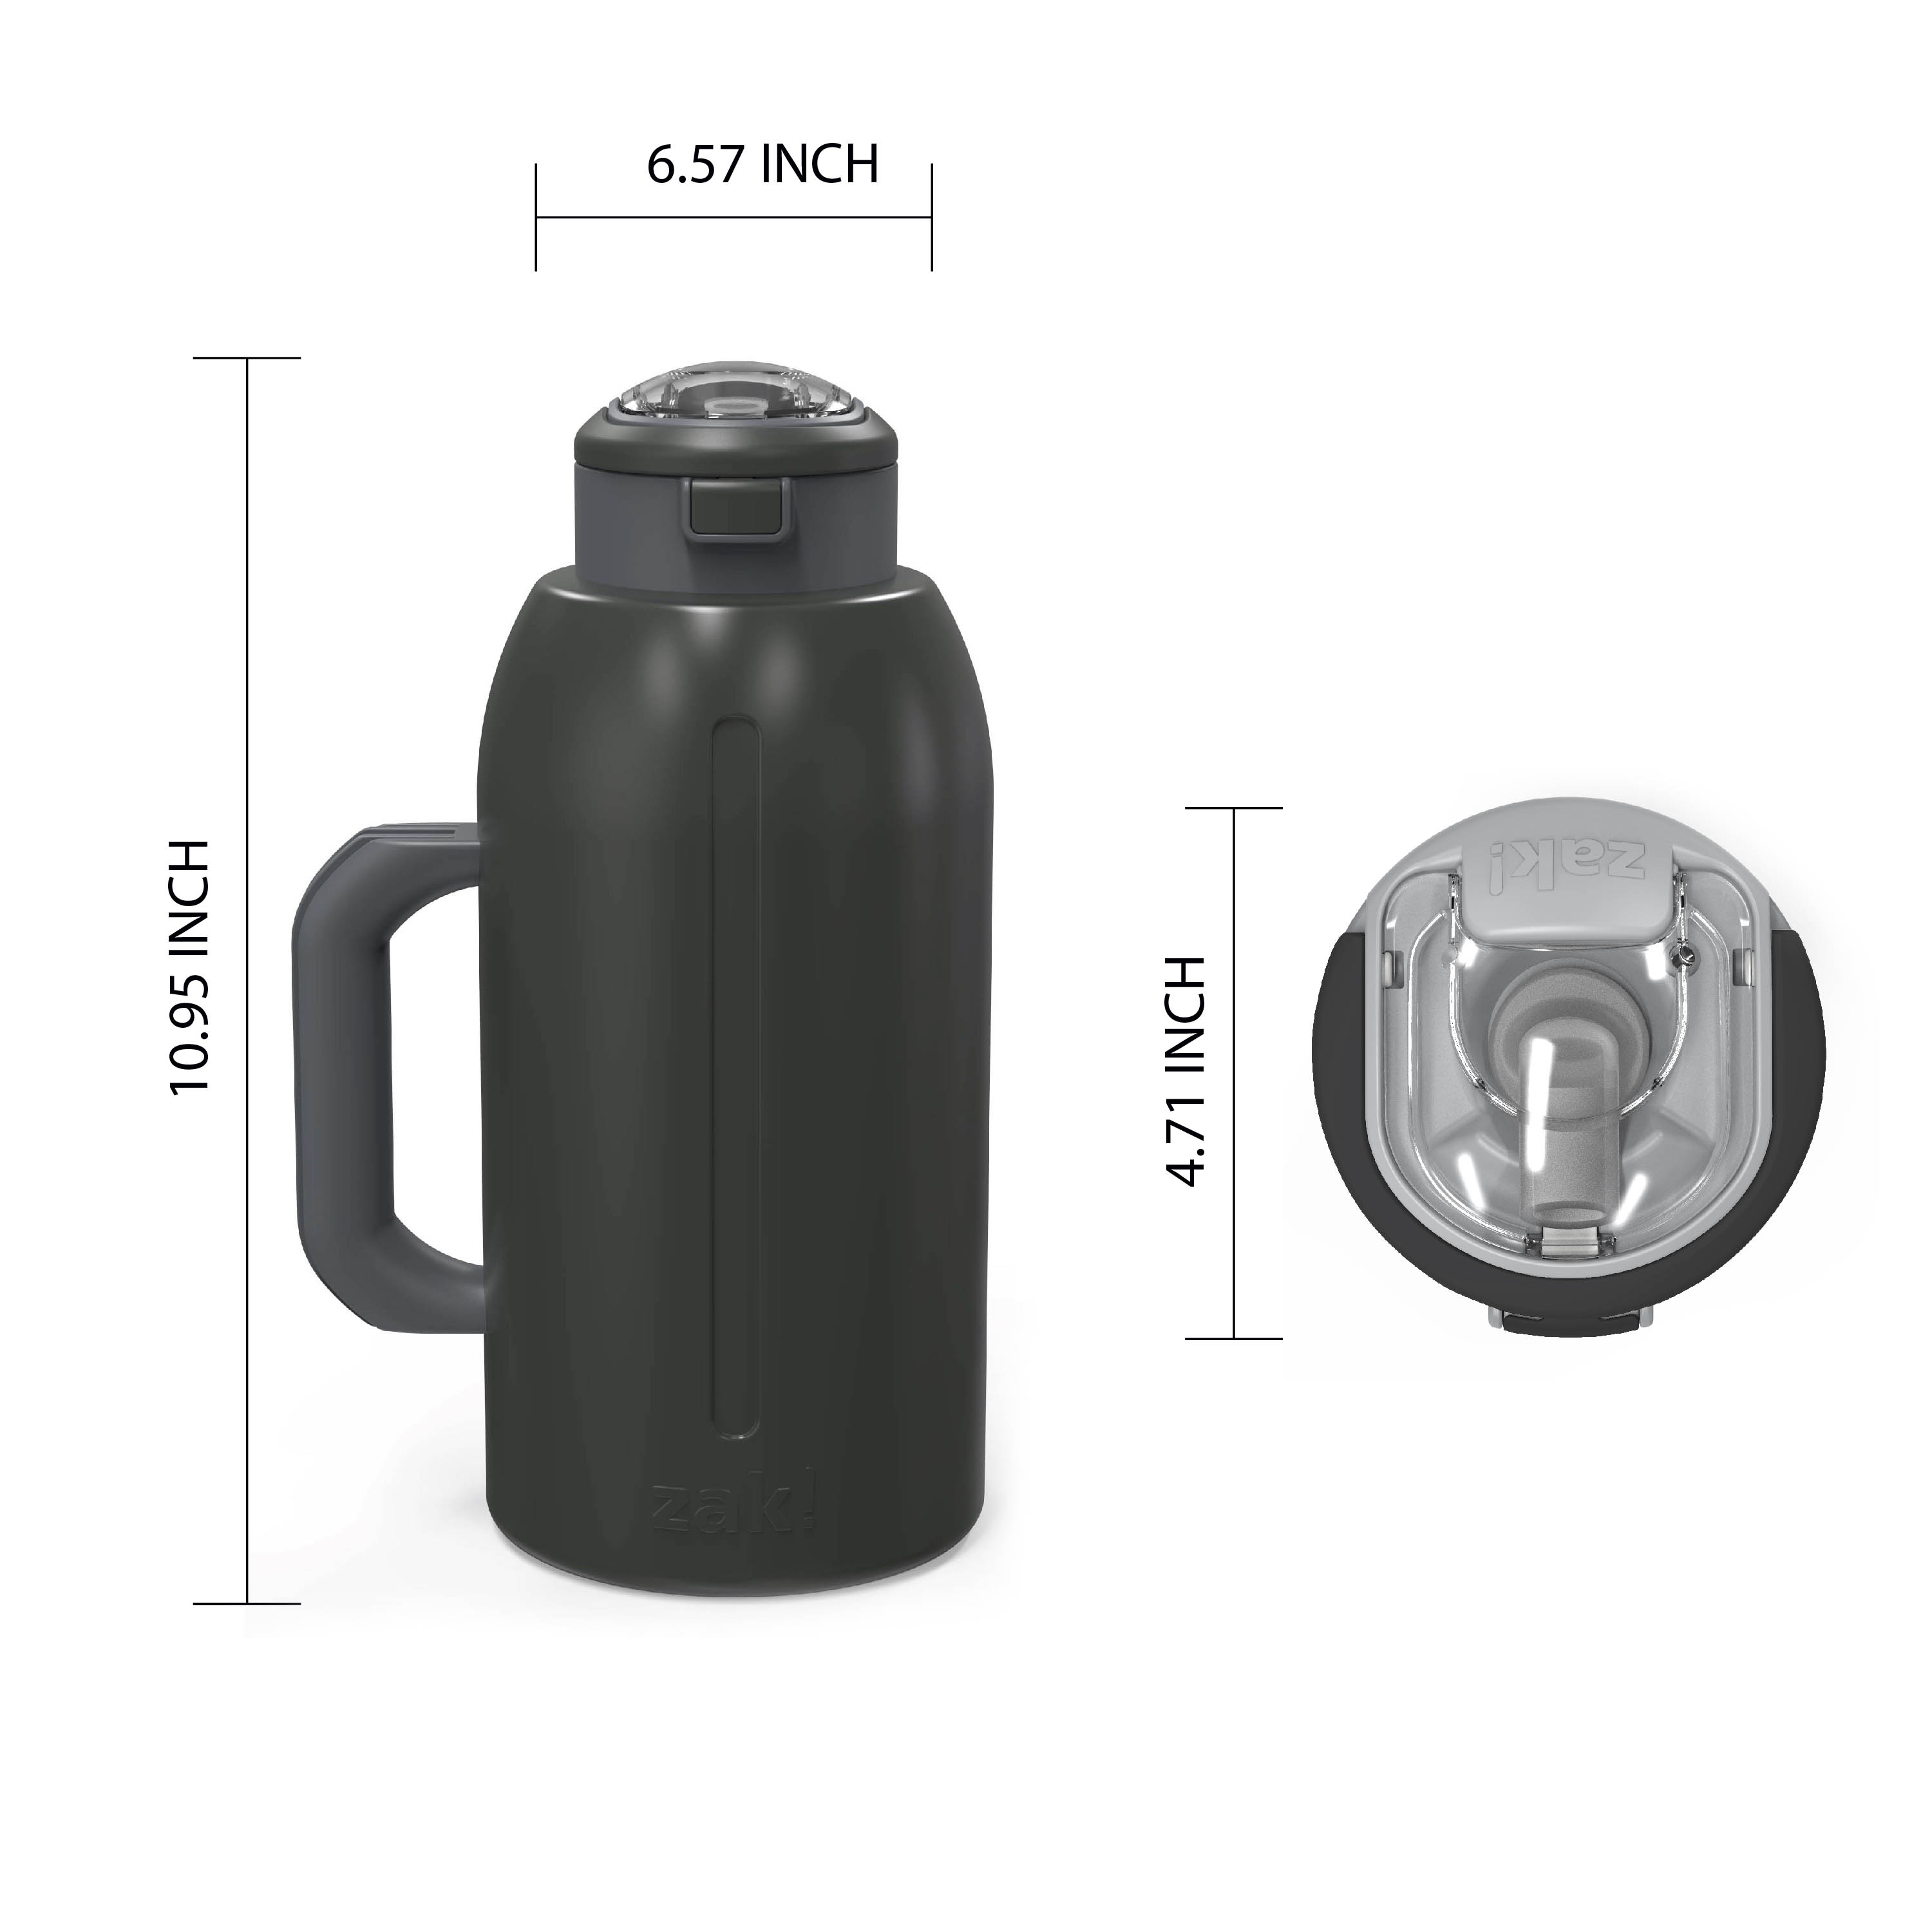 Genesis 64 ounce Stainless Steel Water Bottles, Charcoal slideshow image 7